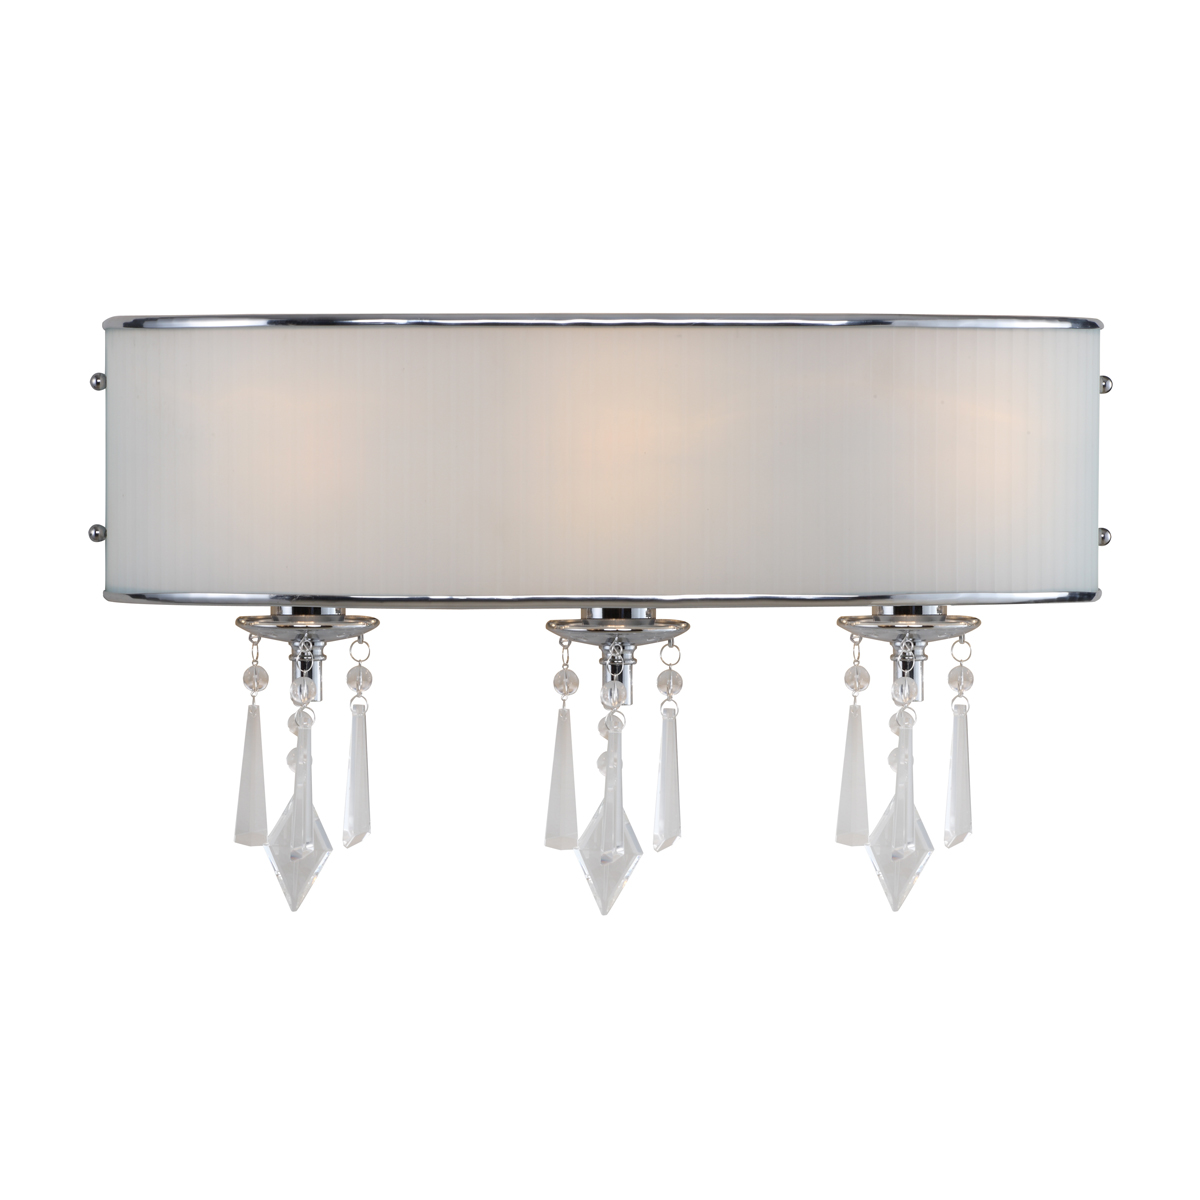 Bathroom vanity light fixtures with luxury trend in spain for Bathroom vanity fixtures